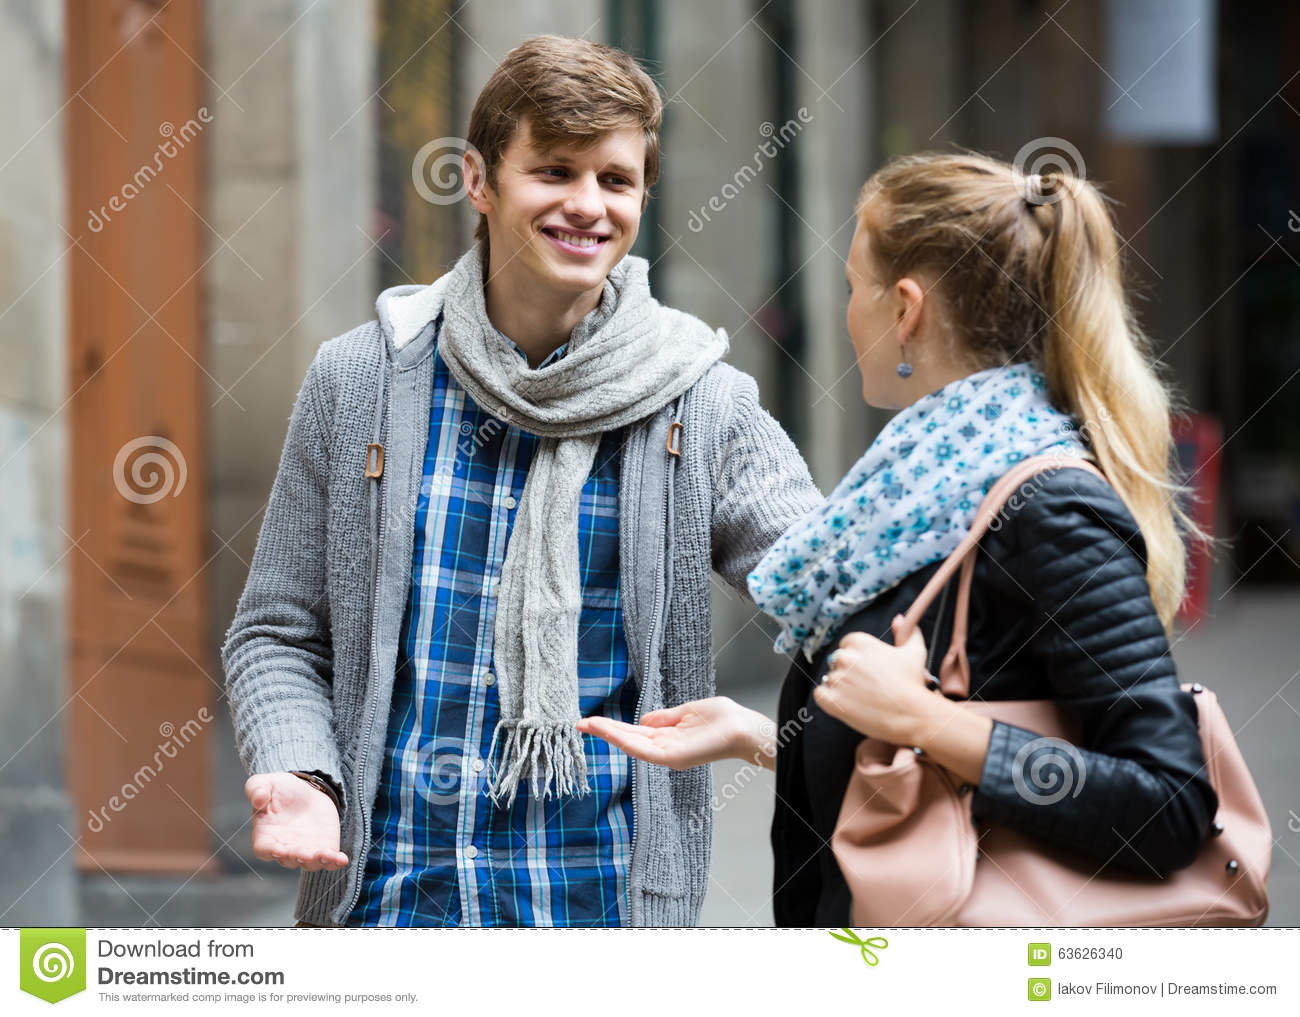 Dating a girl who looks more masculine